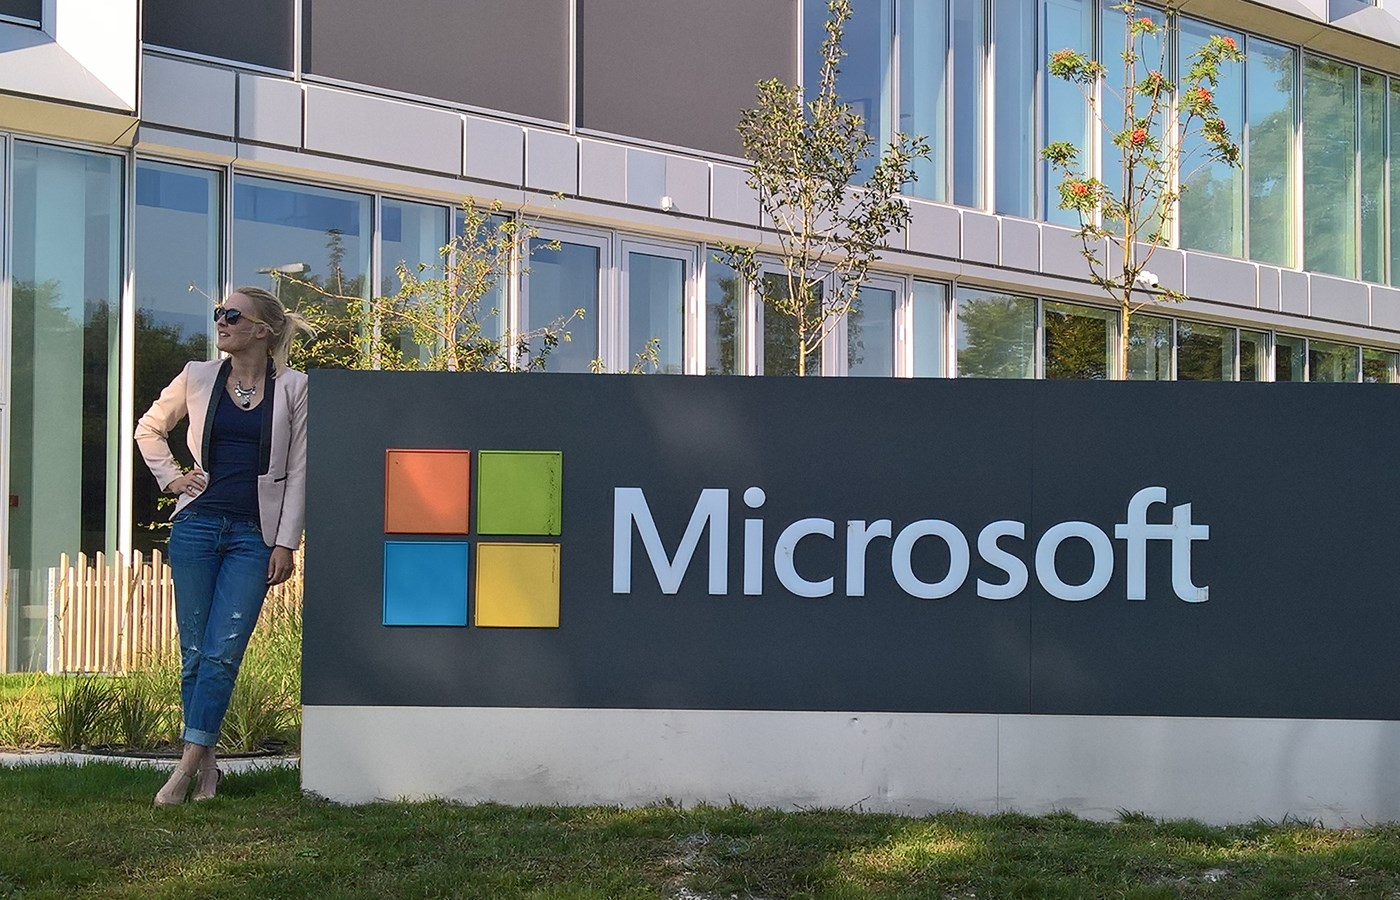 Stine Lund Johansen graduated in January 2017 and just got a job at Microsoft, where she also did her internship. Read her story about how she got the job.